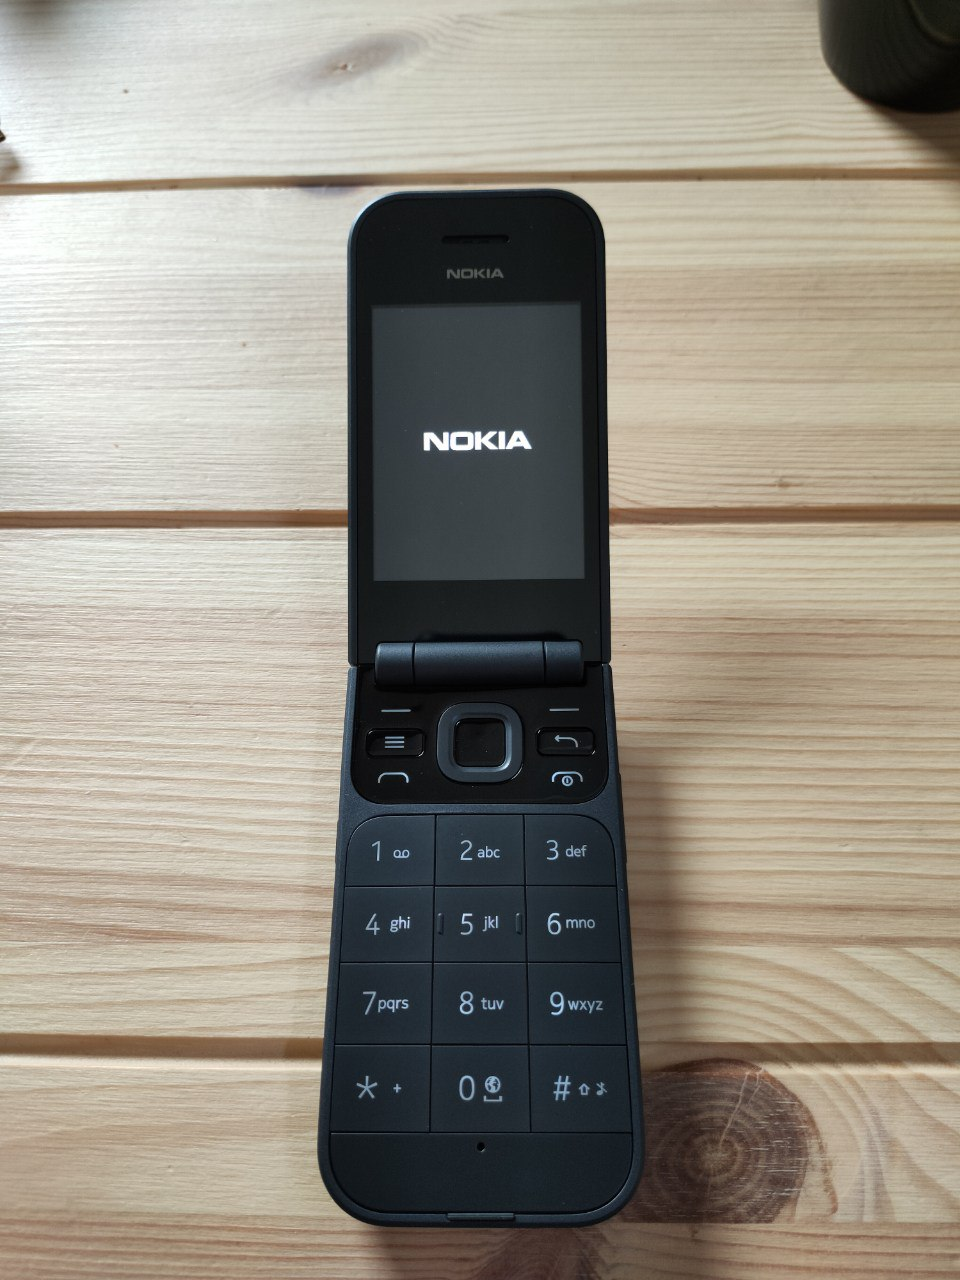 Nokia 7220 Flip Handy Test